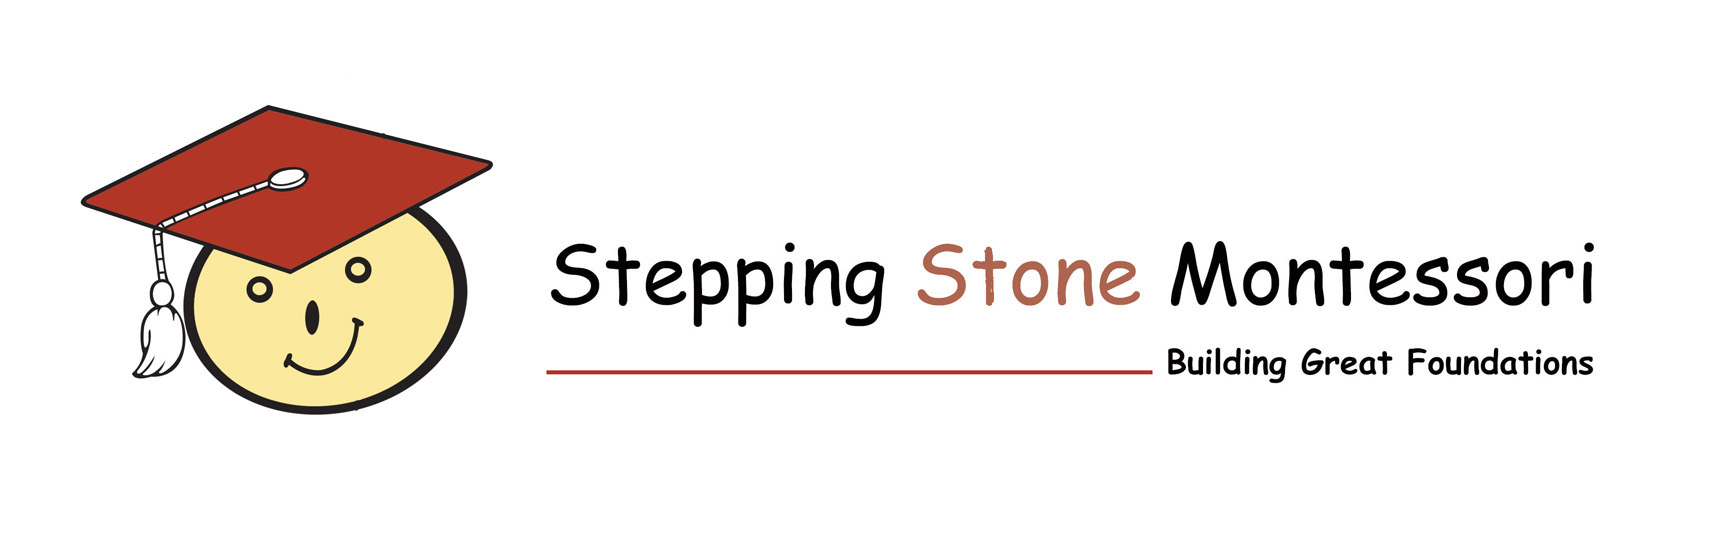 Stepping Stone Montessori